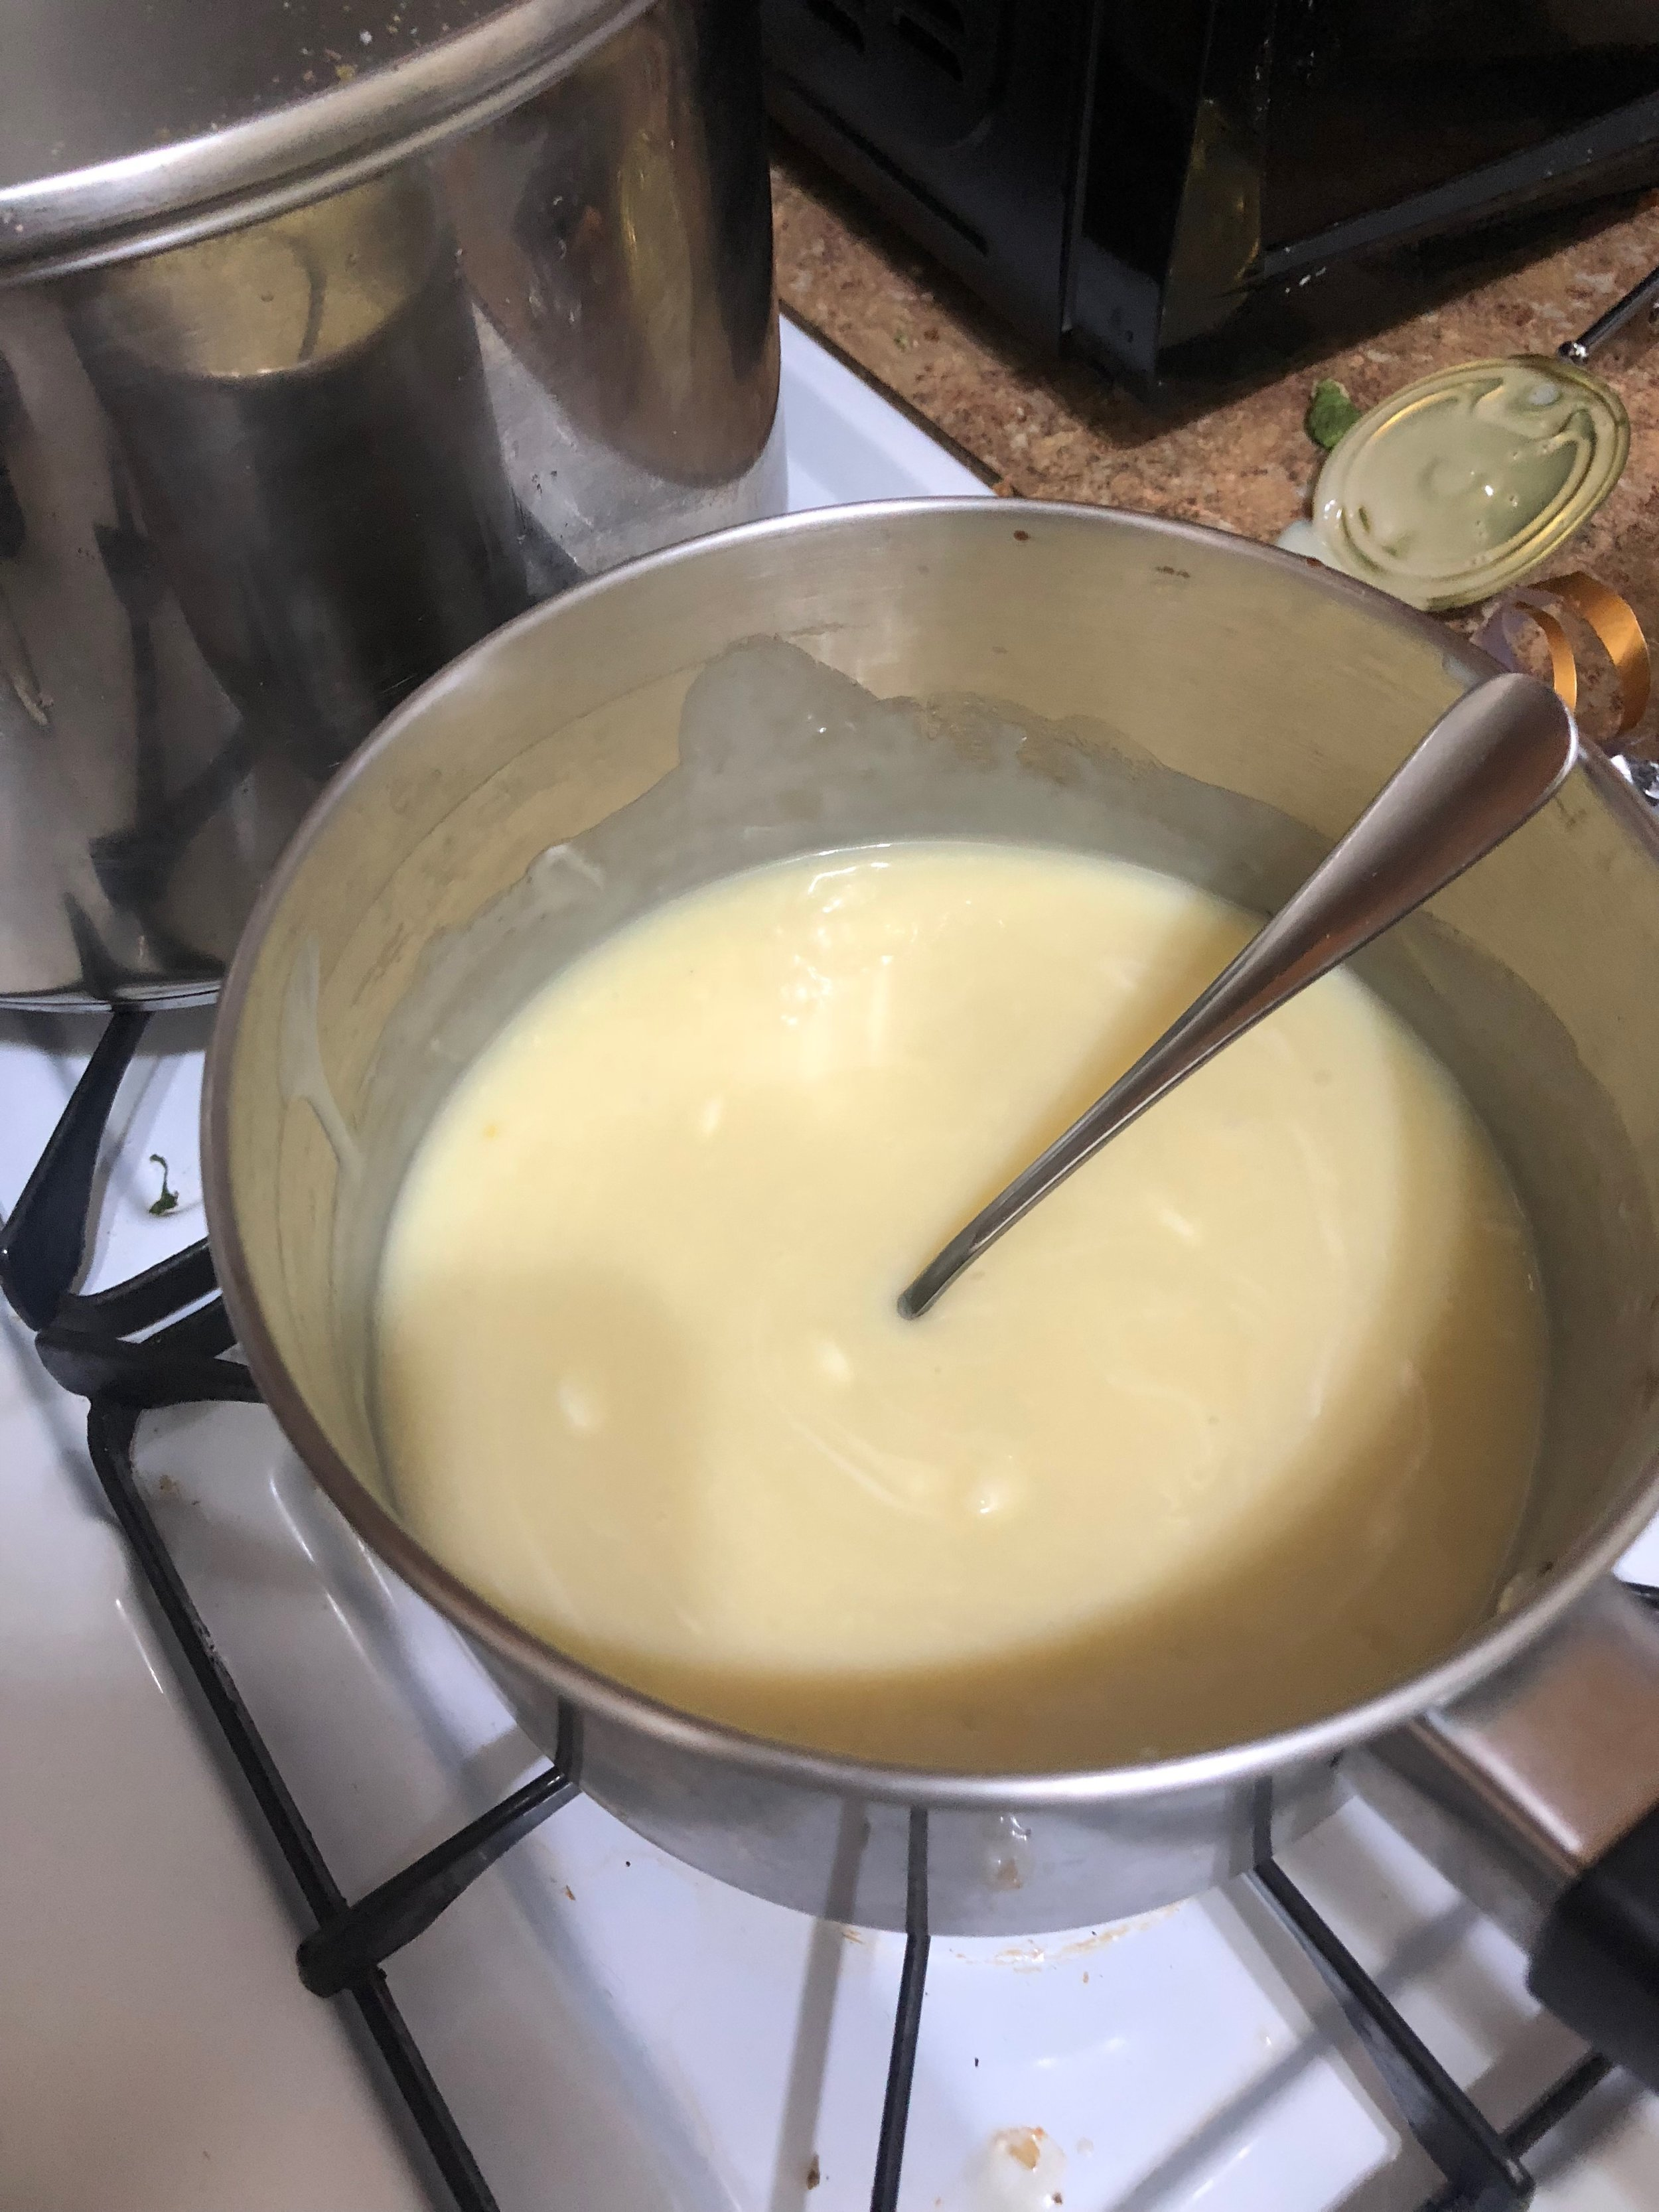 Add the an of condensed milk, 2-3 cups of white chocolate chips, 2-tbls of butter and a sprinkling of salt to medium saucepan over low heat. Add the chips in batches, making sure to continuously stir the mixture so the bottom of the pan does not burn and the chips, butter and milk are all integrated. When everything is mixed, you have the option of adding the vanilla.